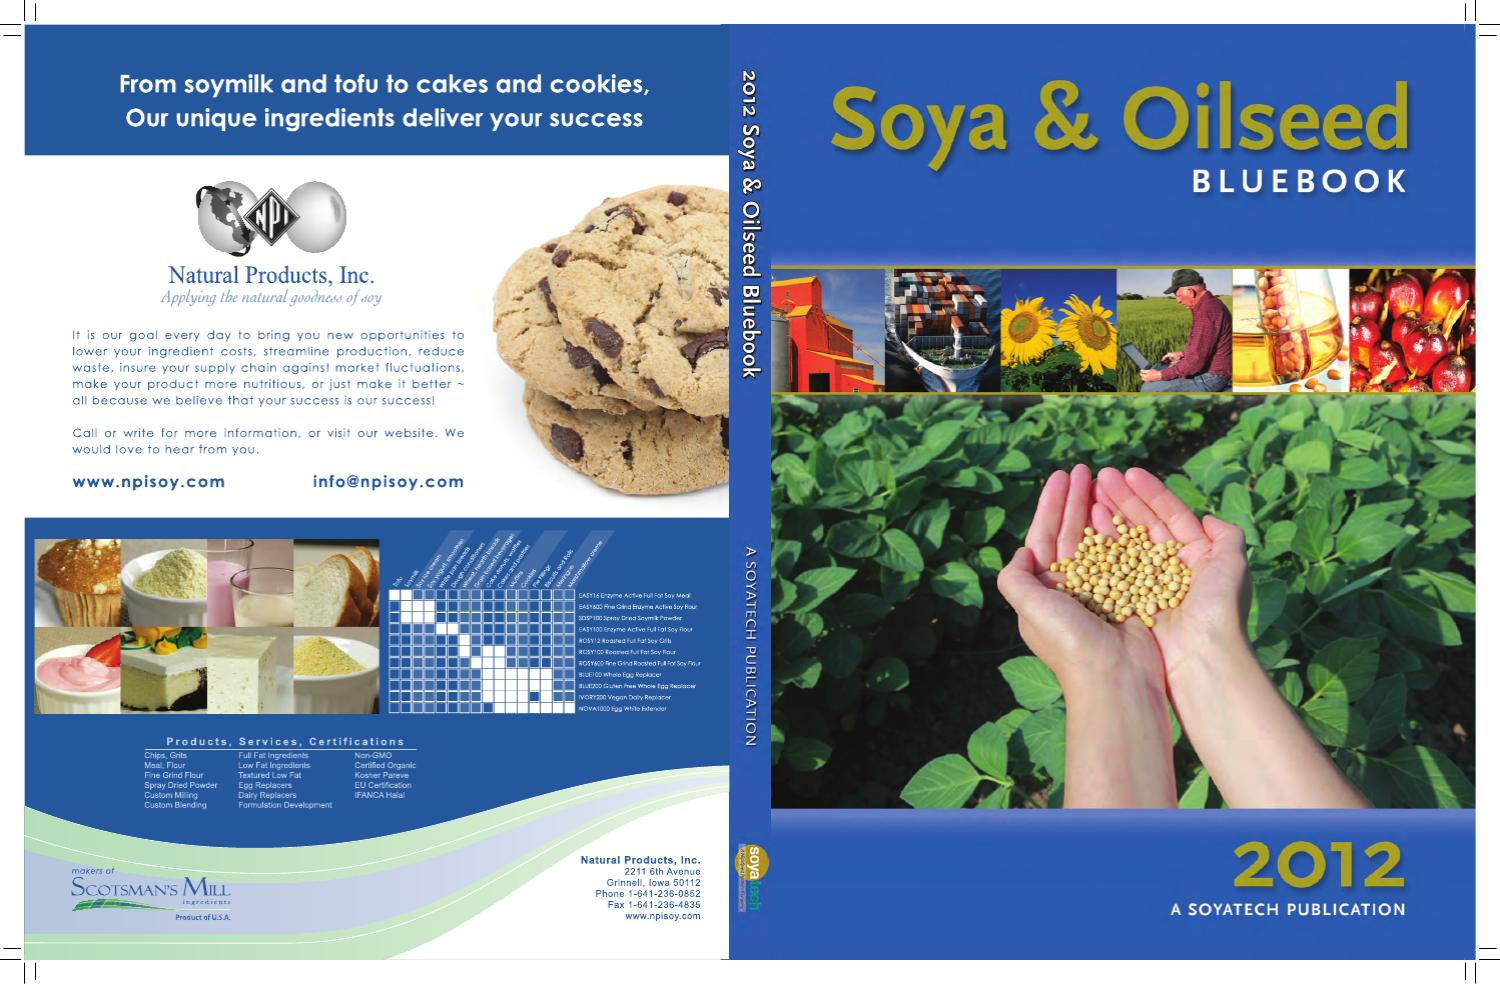 Soya oilseed bluebook by highquest partners issuu fandeluxe Images